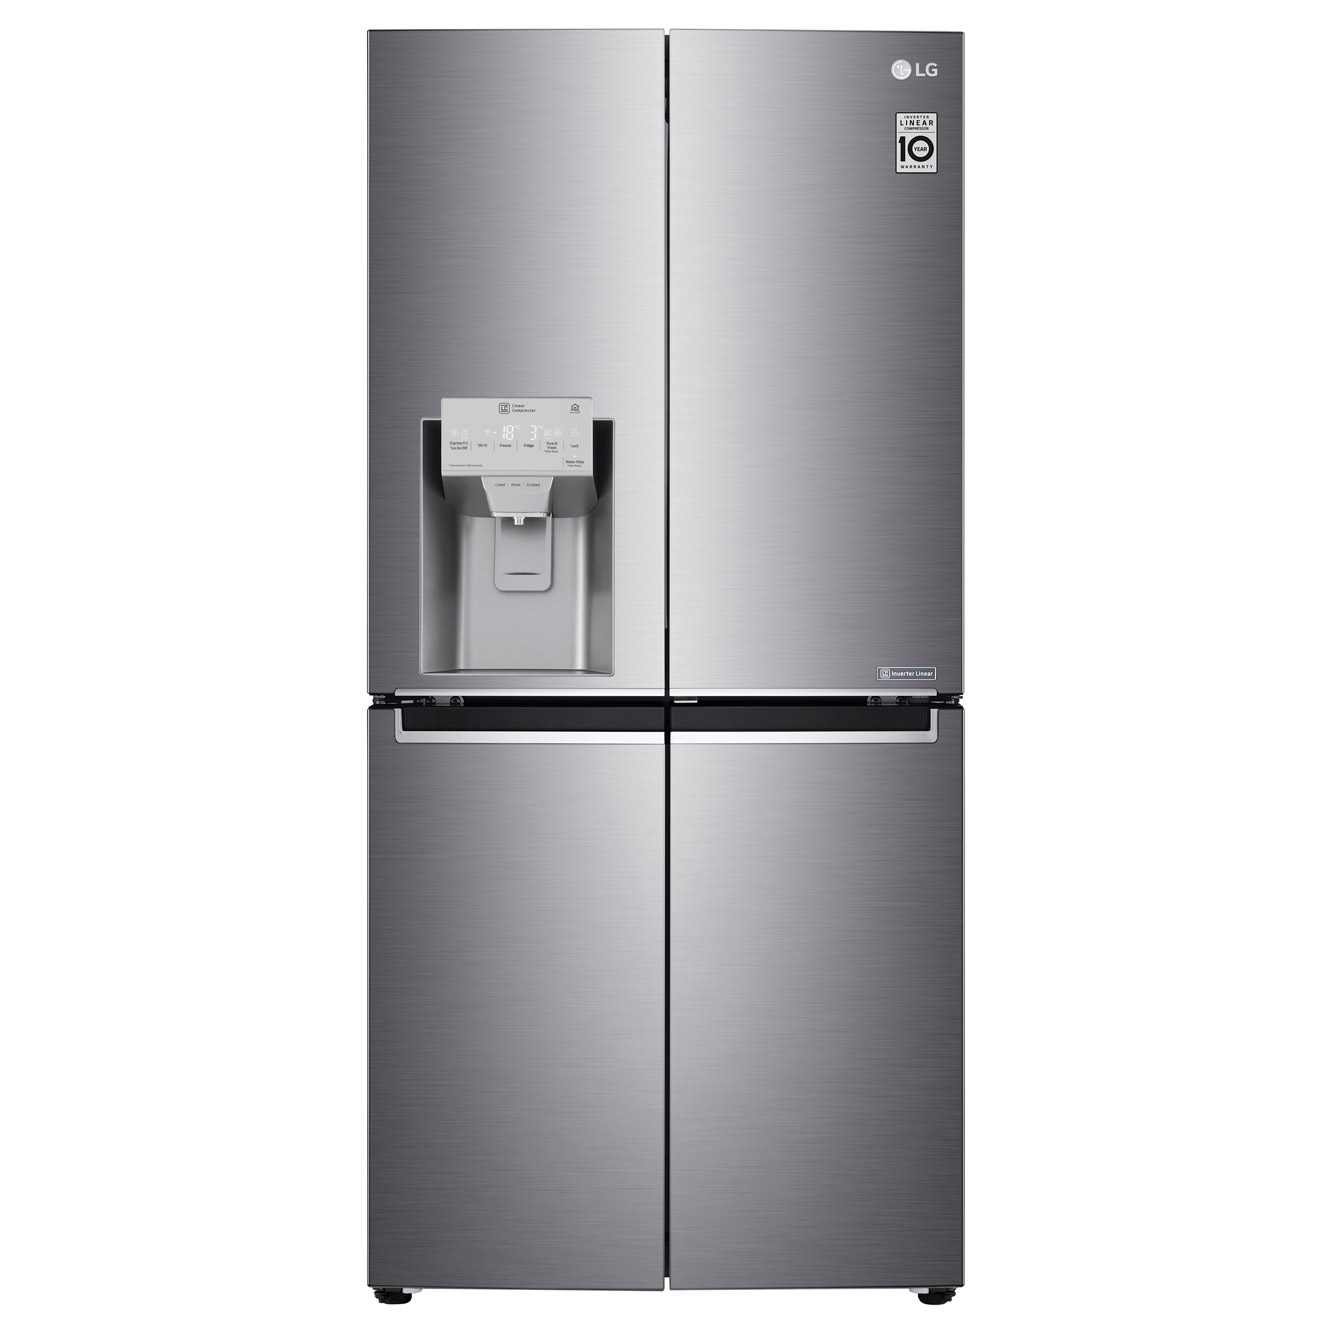 LG GMJ844PZKV InstaView 4 Door Fridge Freezer in St/St, Ice/Water, PL